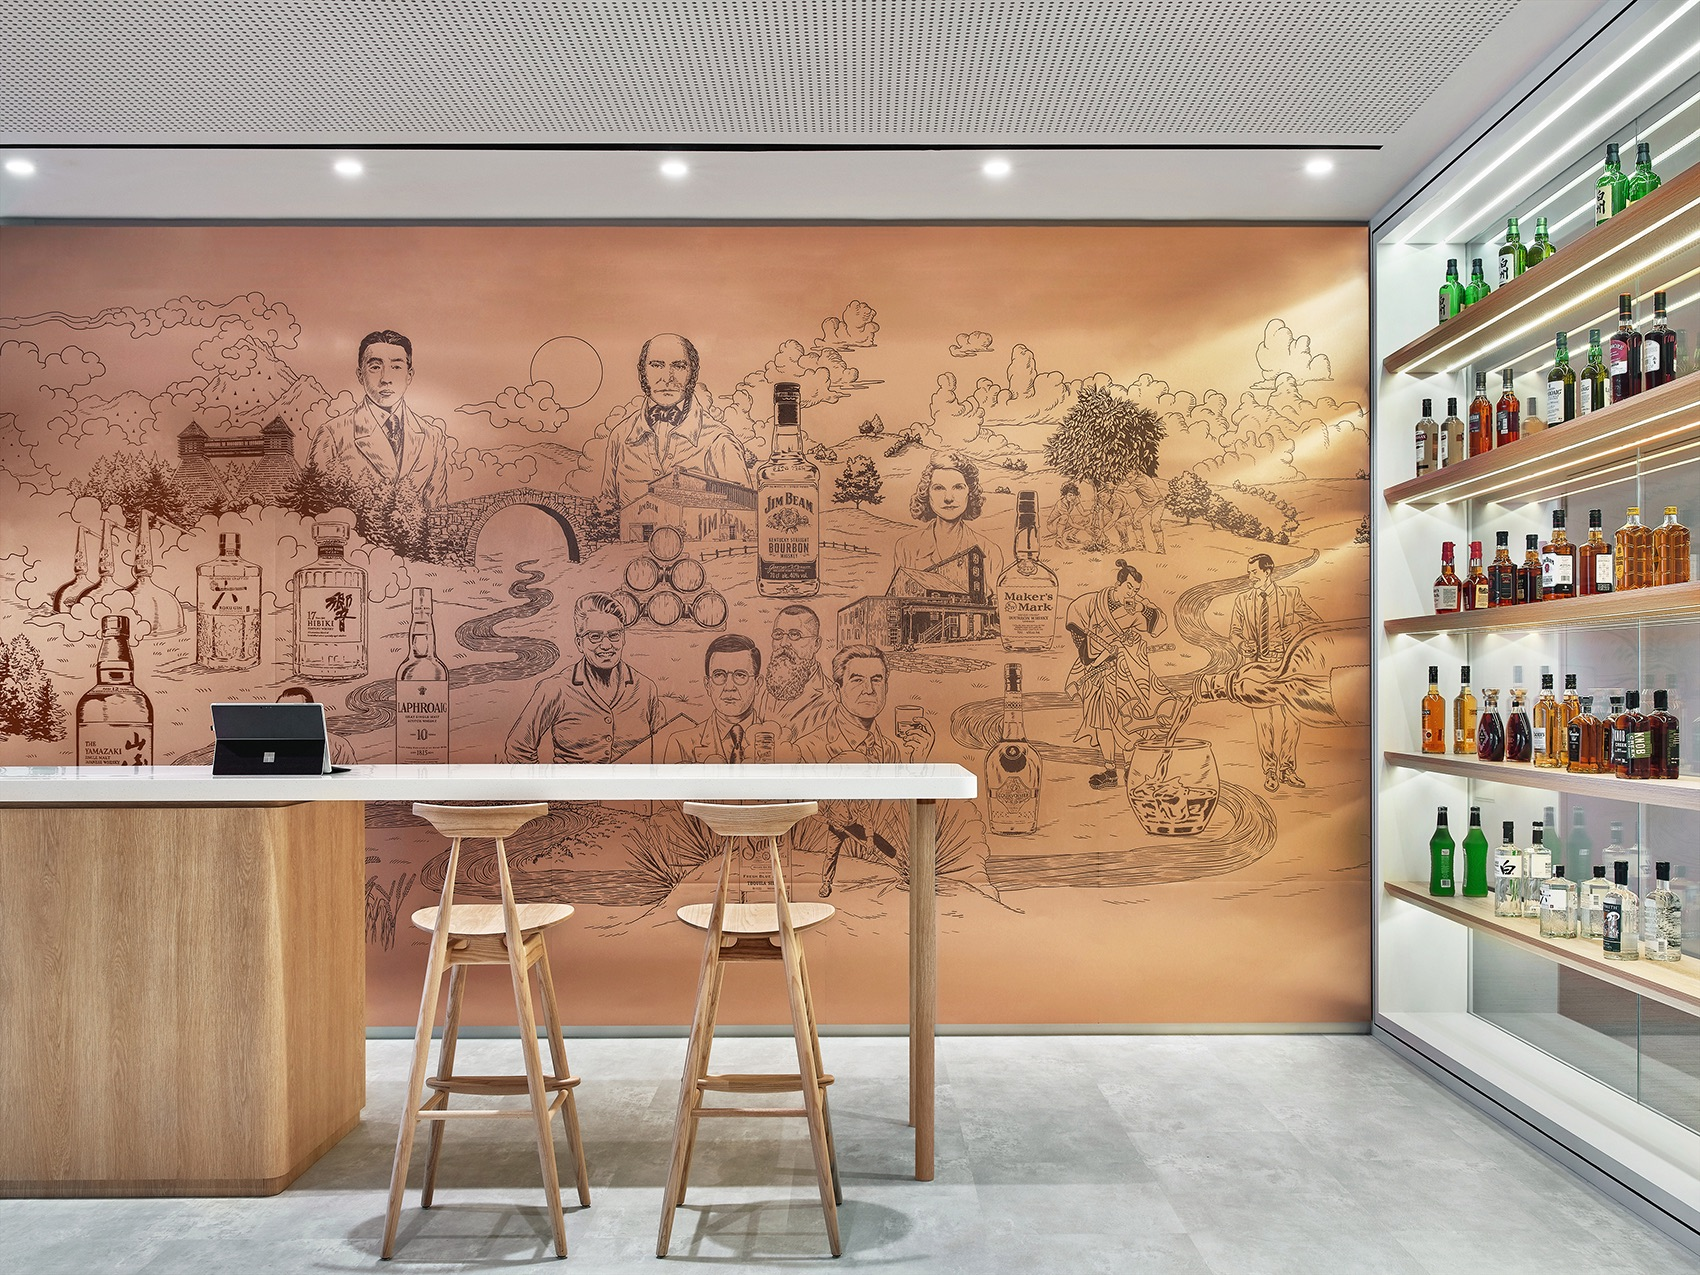 beam-suntory-singapore-office-8